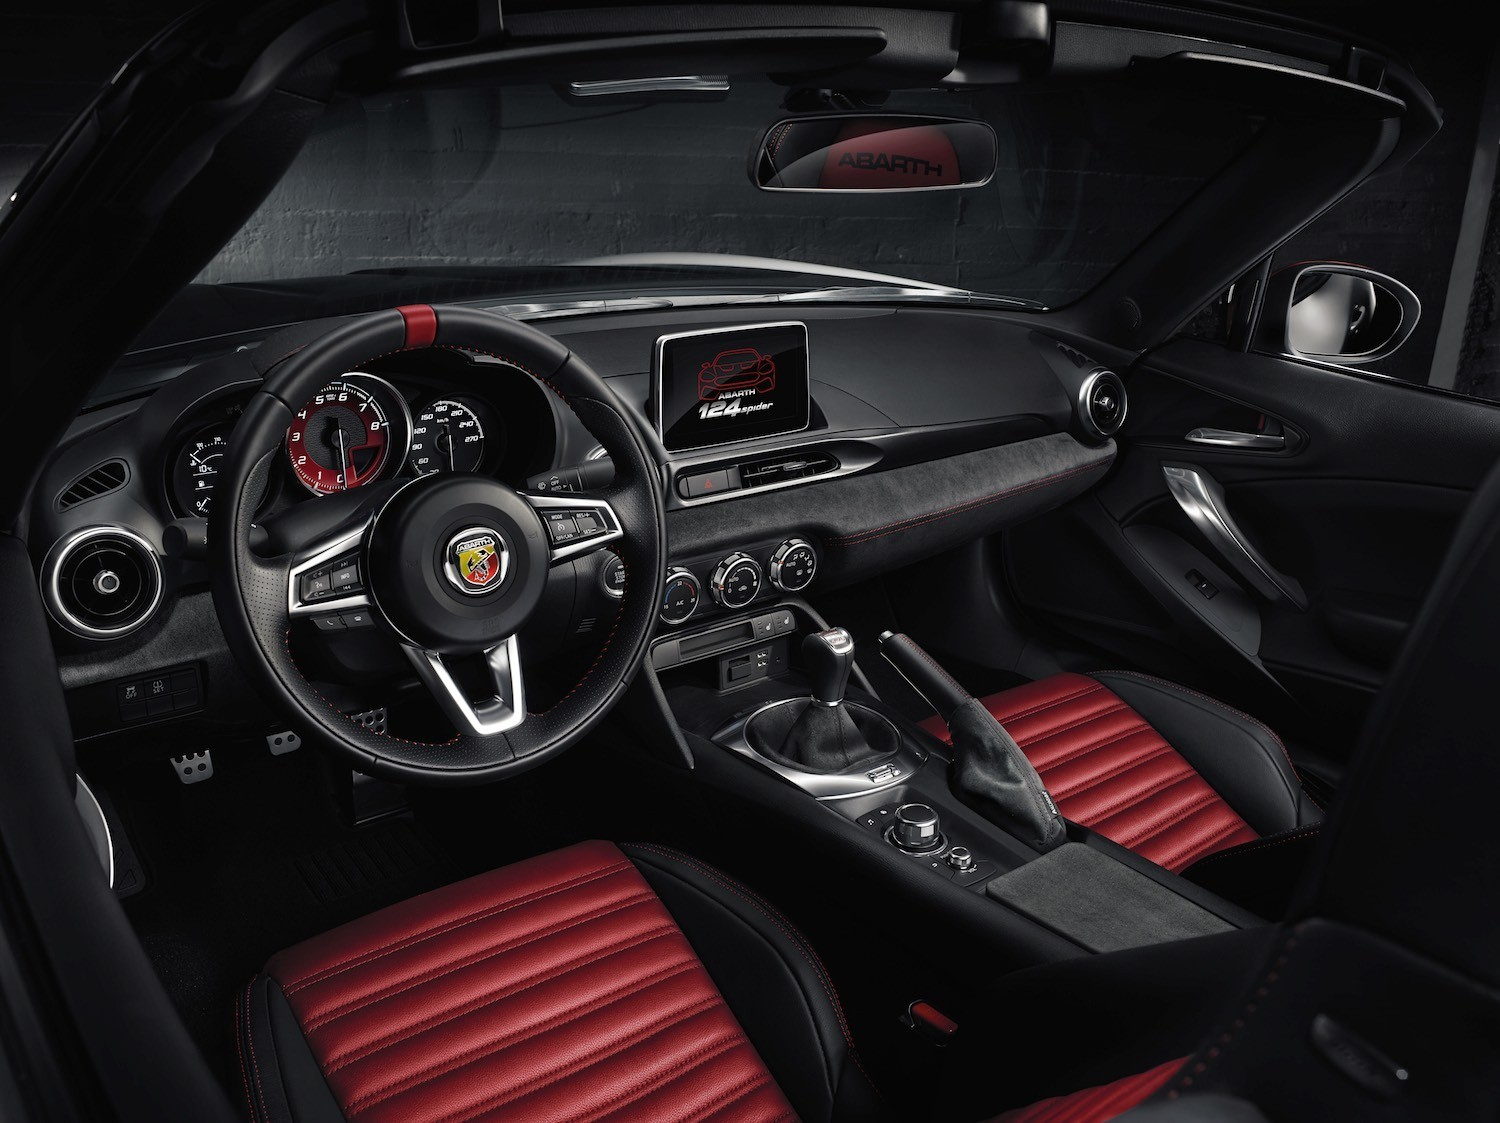 Jonathan Humphrey reviews the Abarth 124 Spider for Drive 15